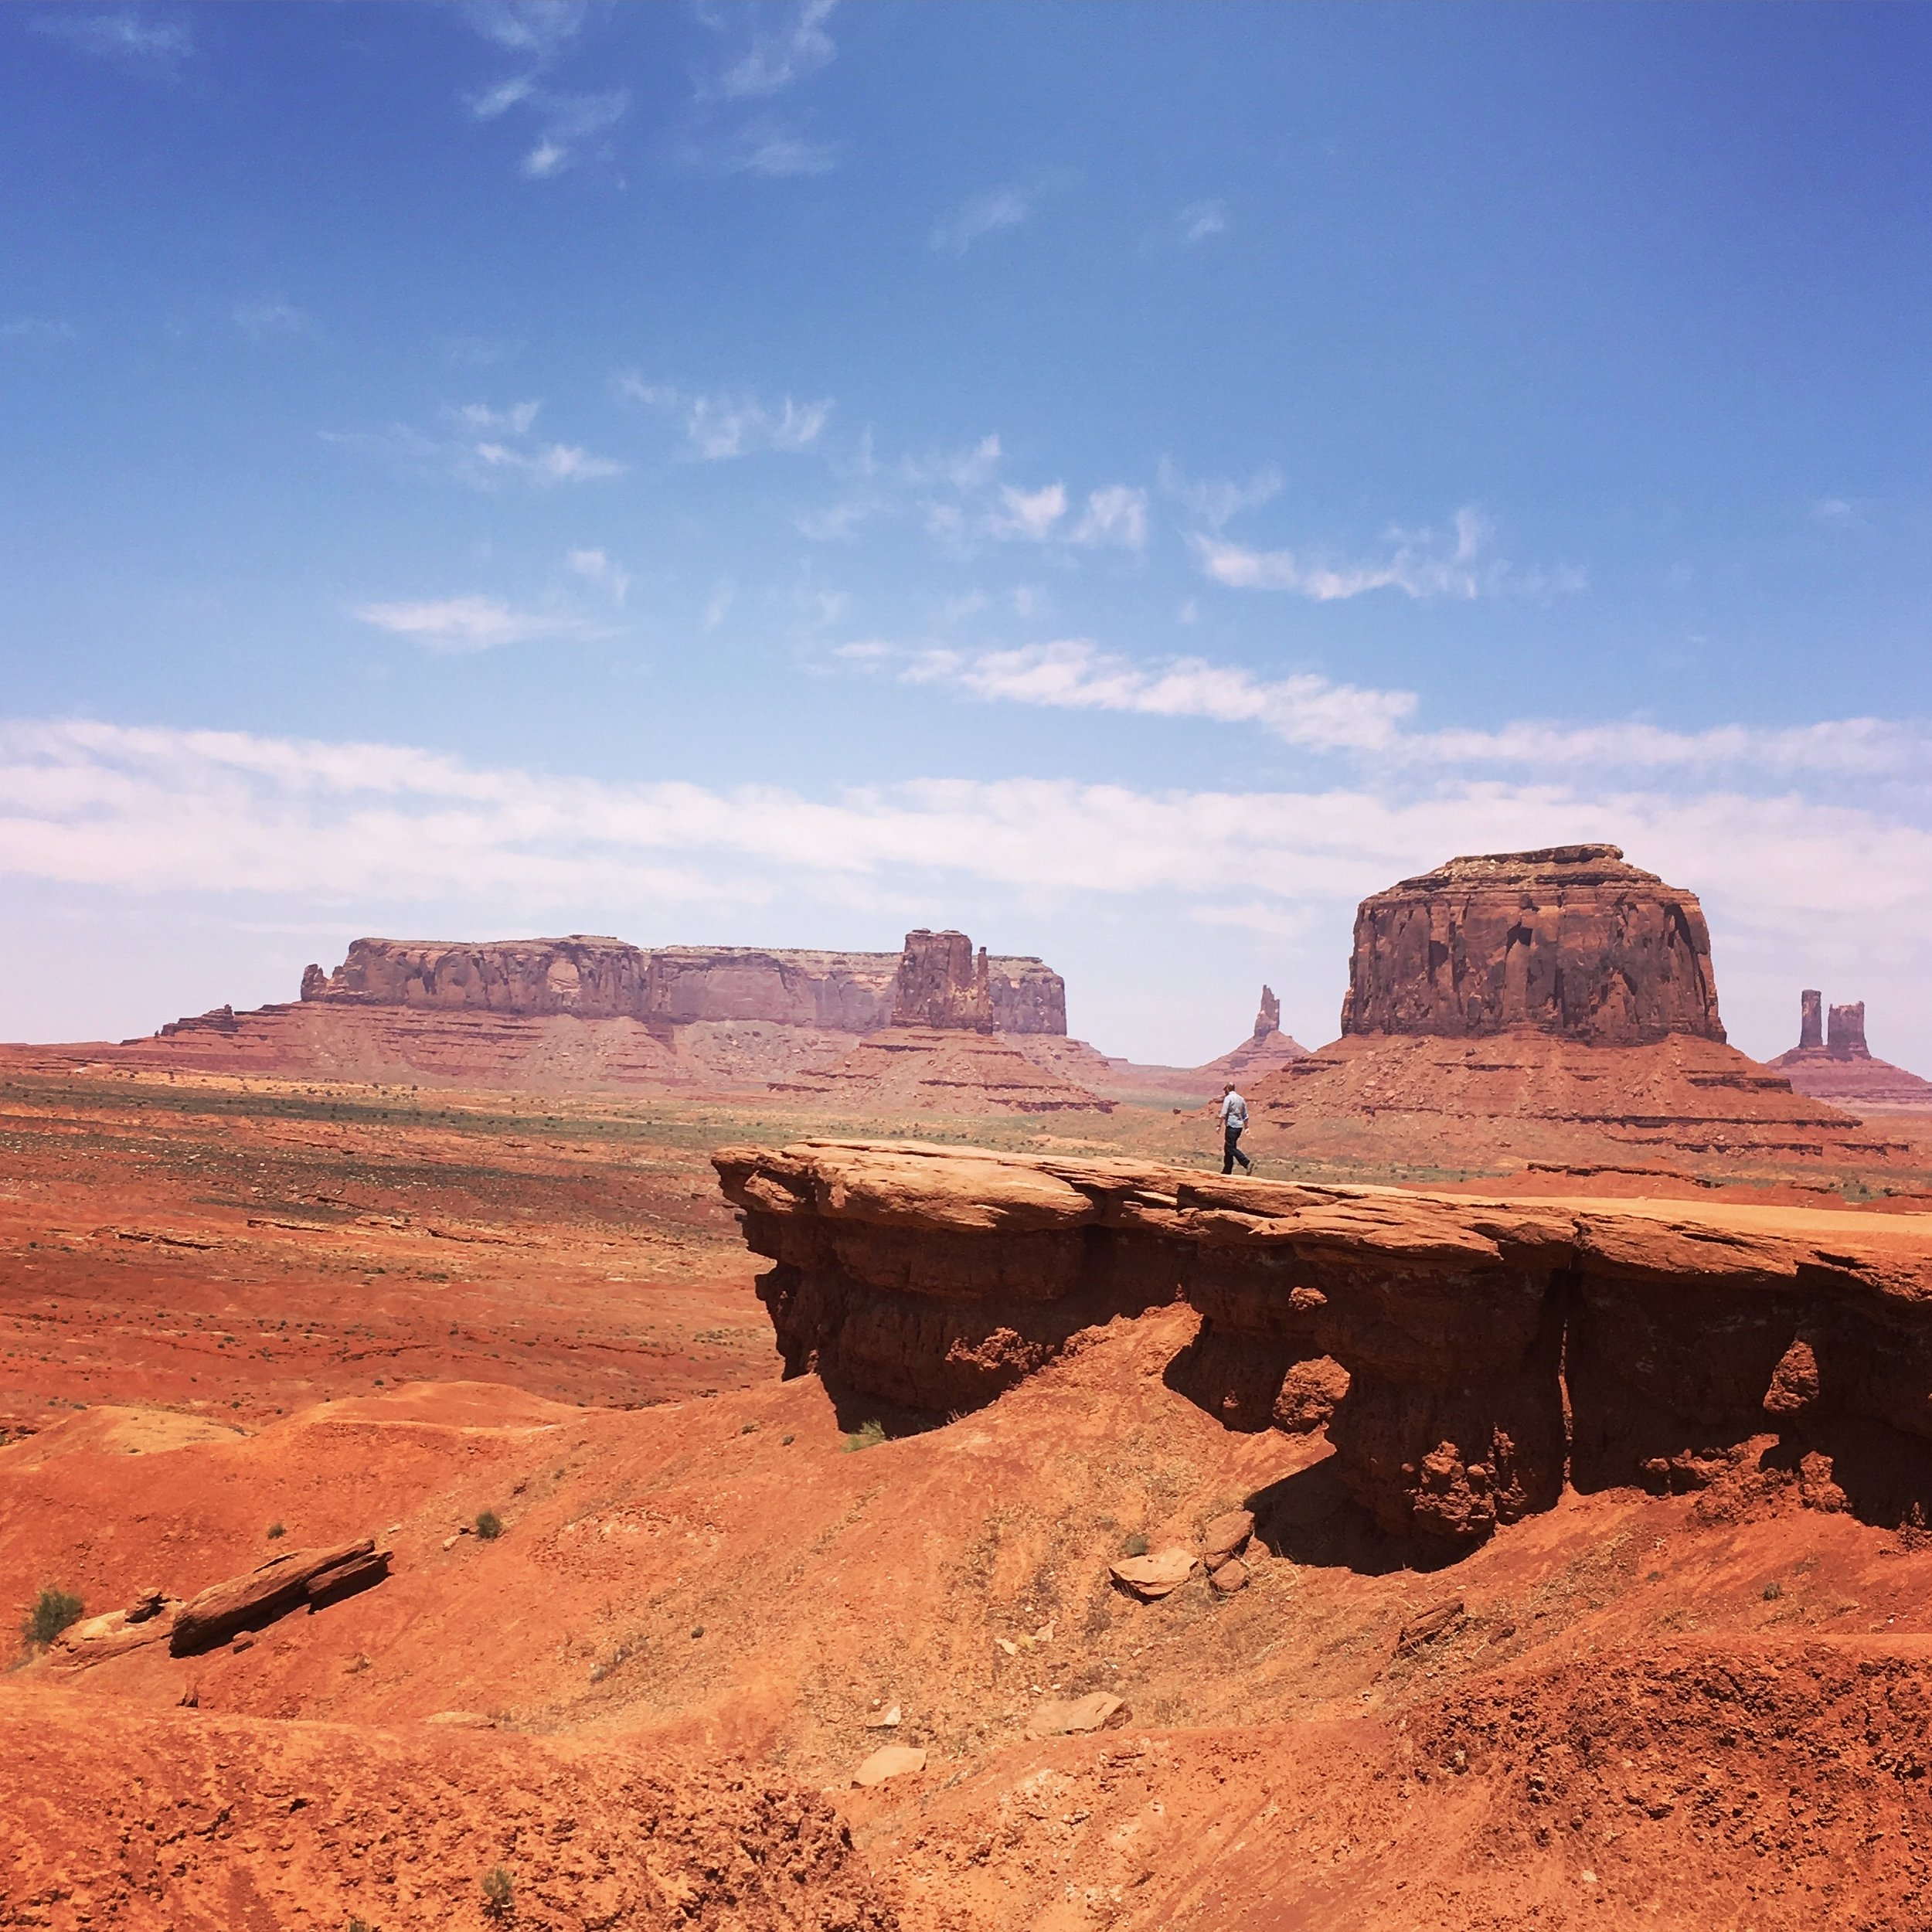 IG: Alexander was enamored because there is a martian quality to the landscape.